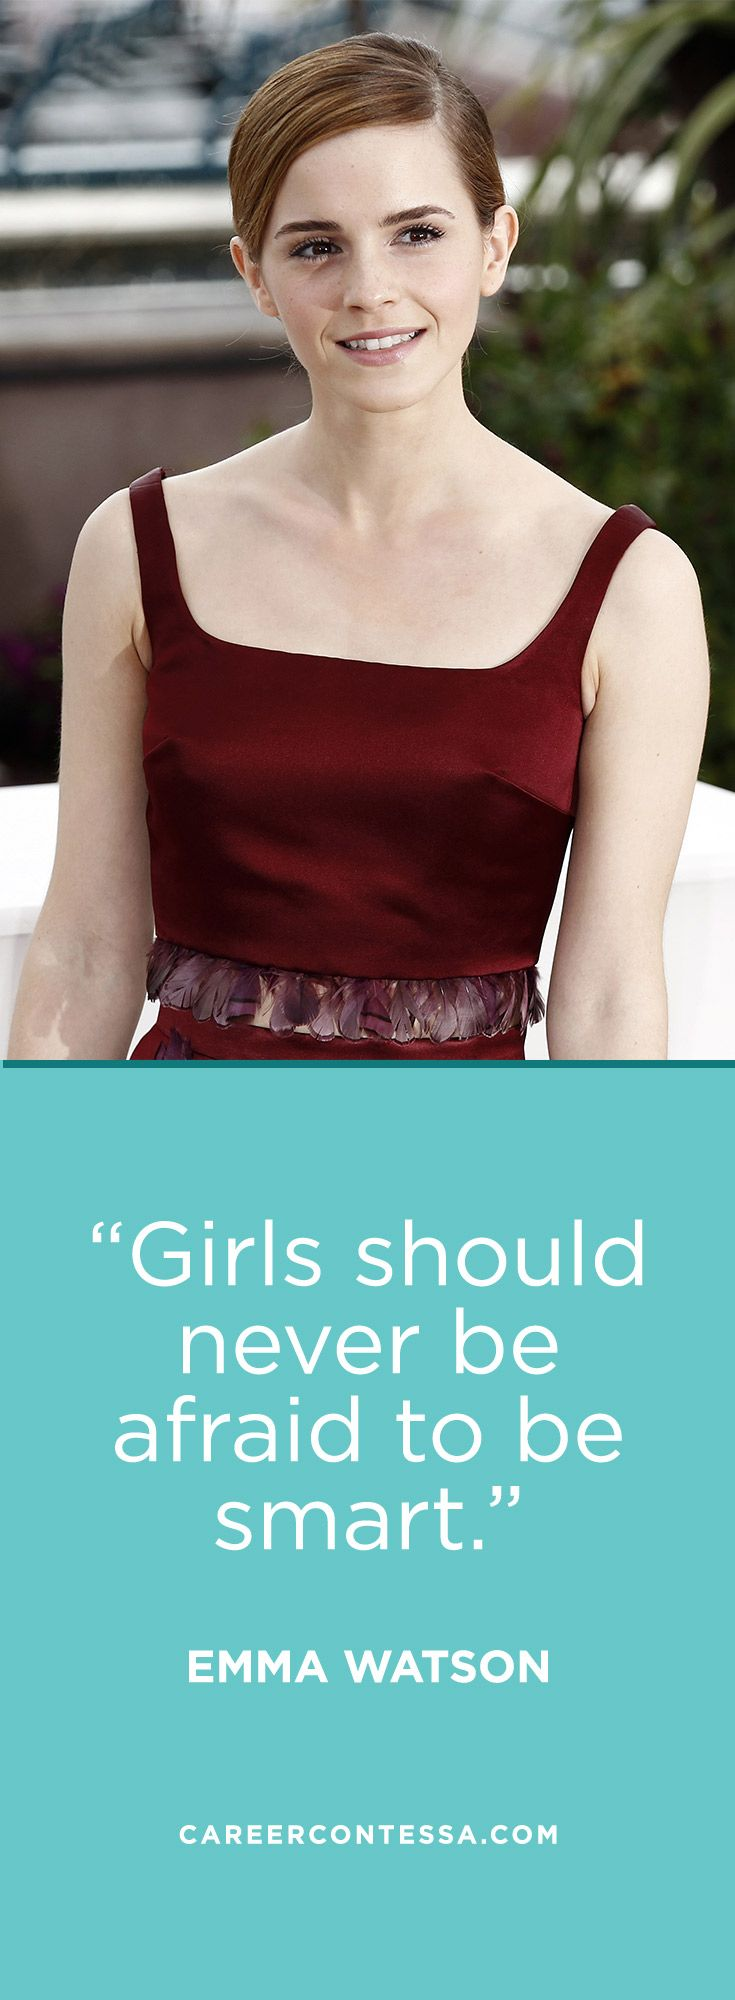 Wise words from our feminist hero Emma Watson!